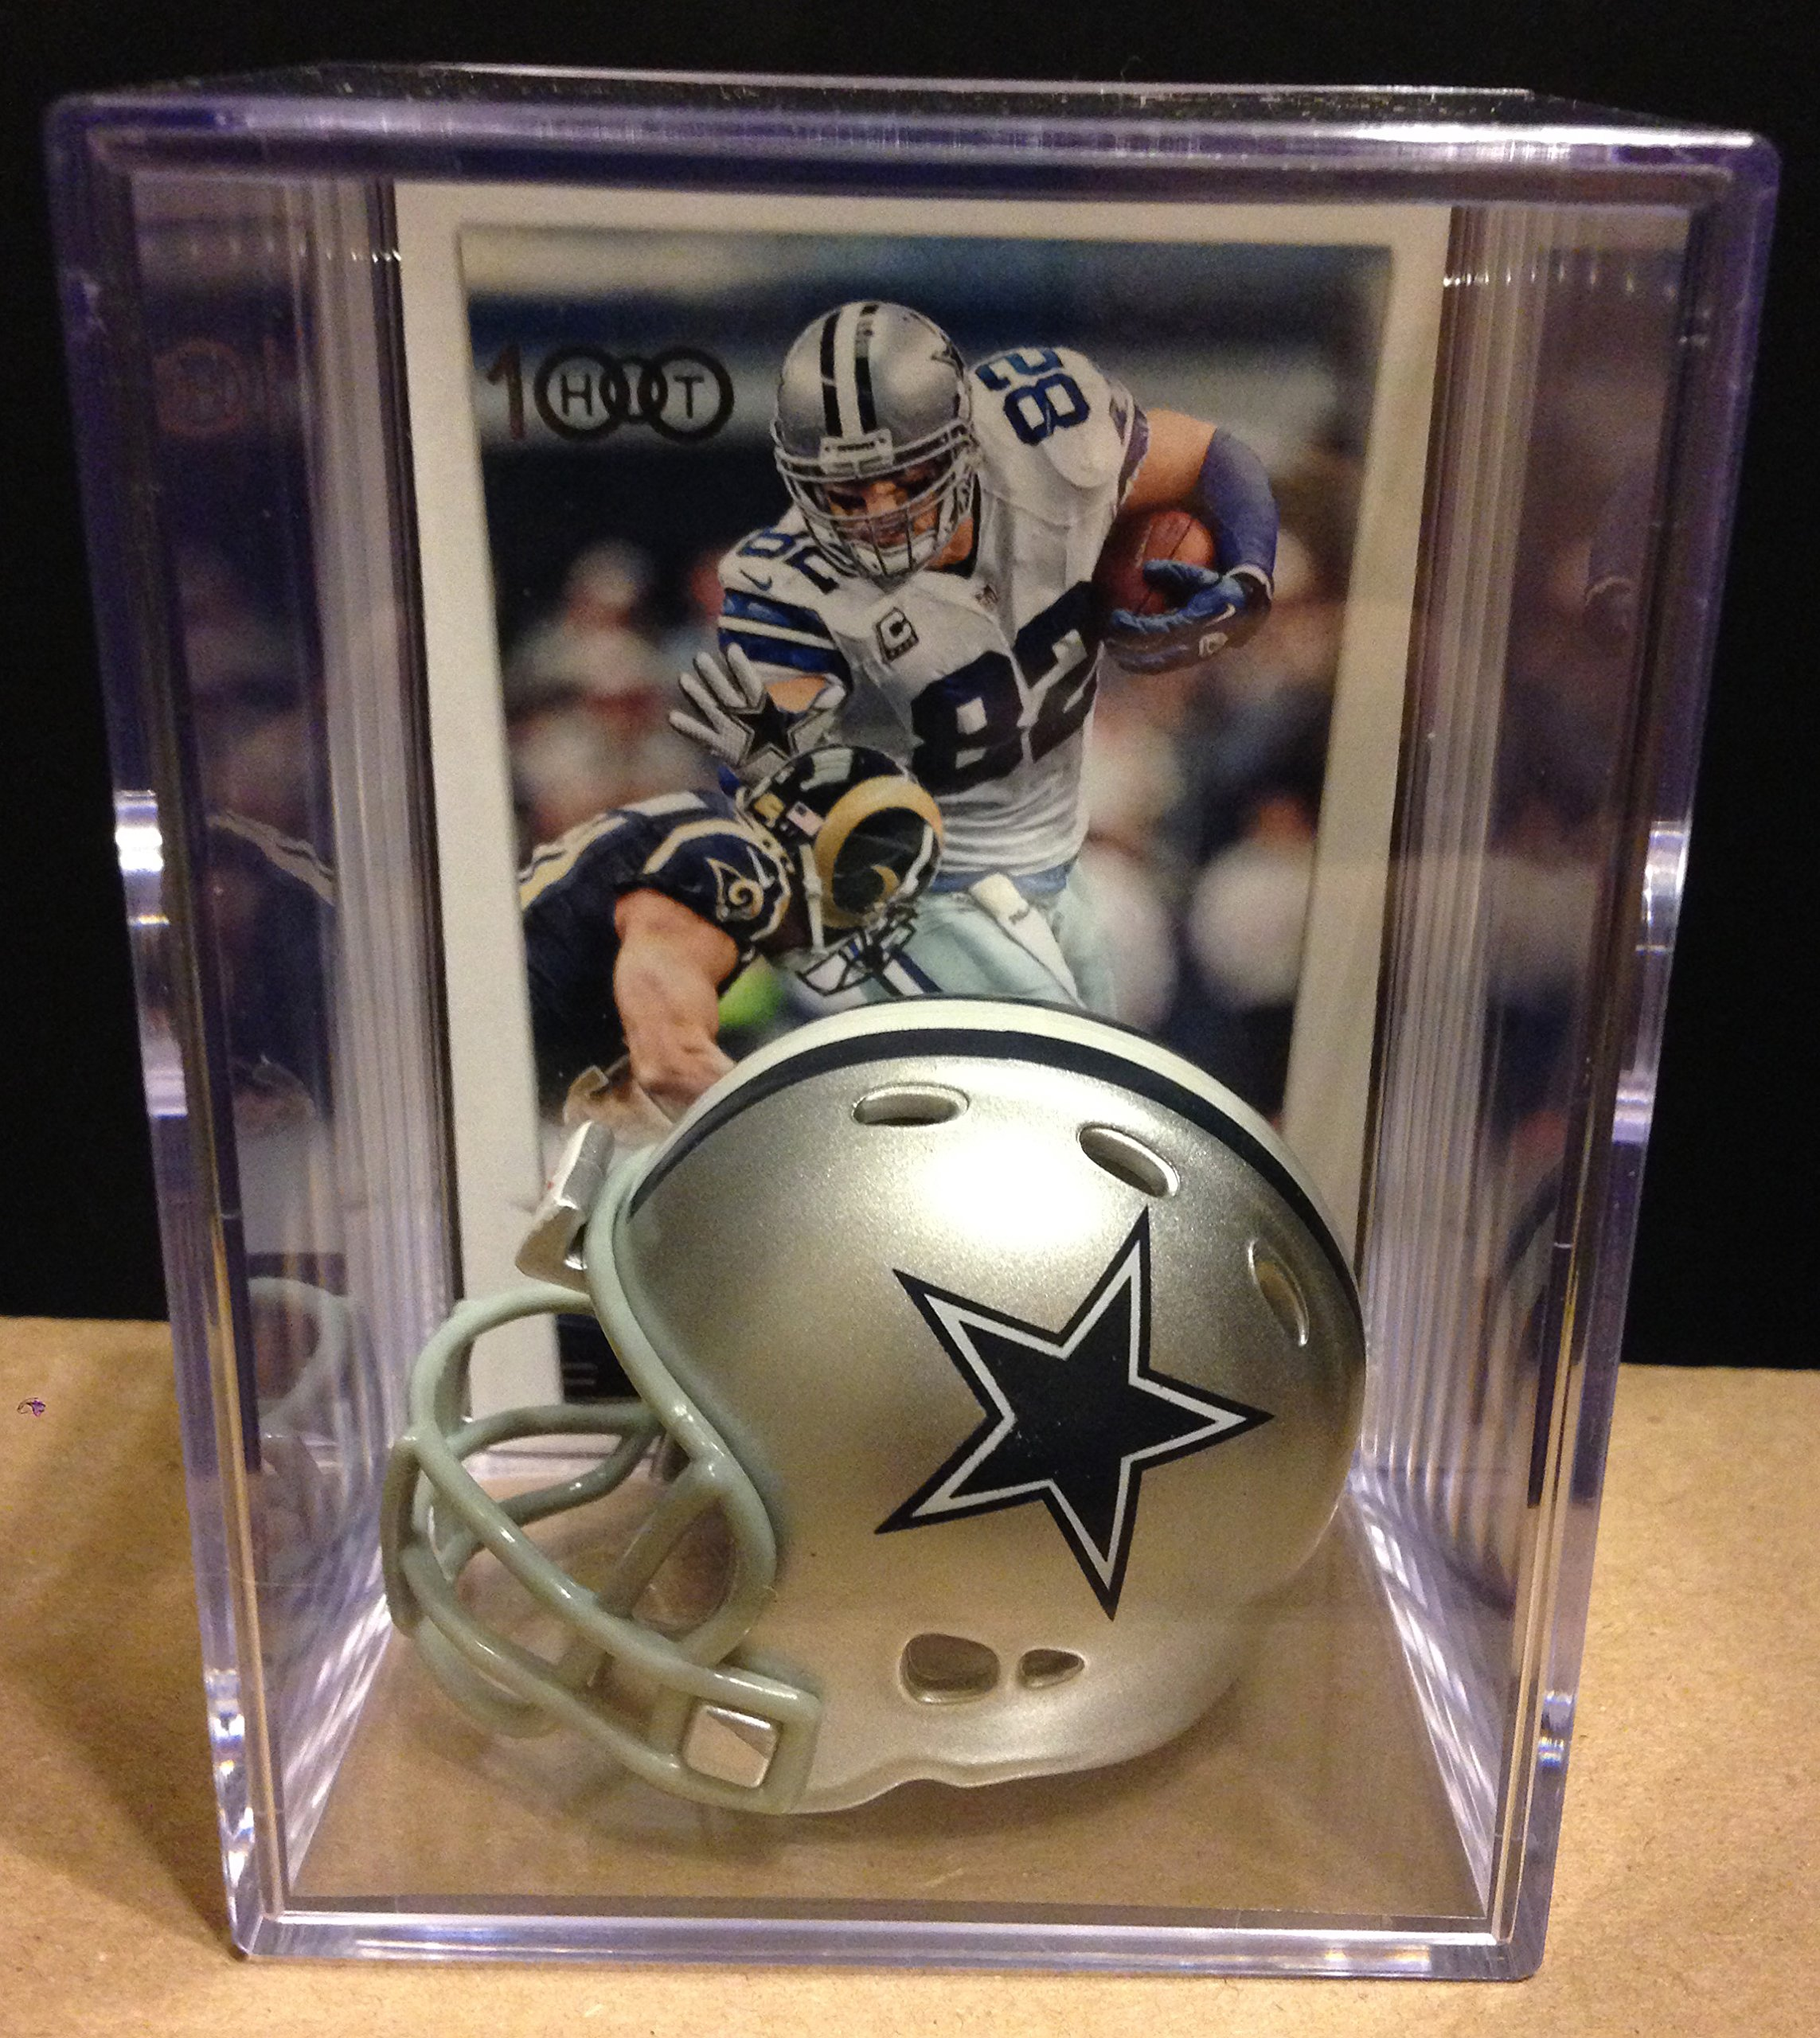 Dallas Cowboys NFL Helmet Shadowbox w/ Jason Witten card